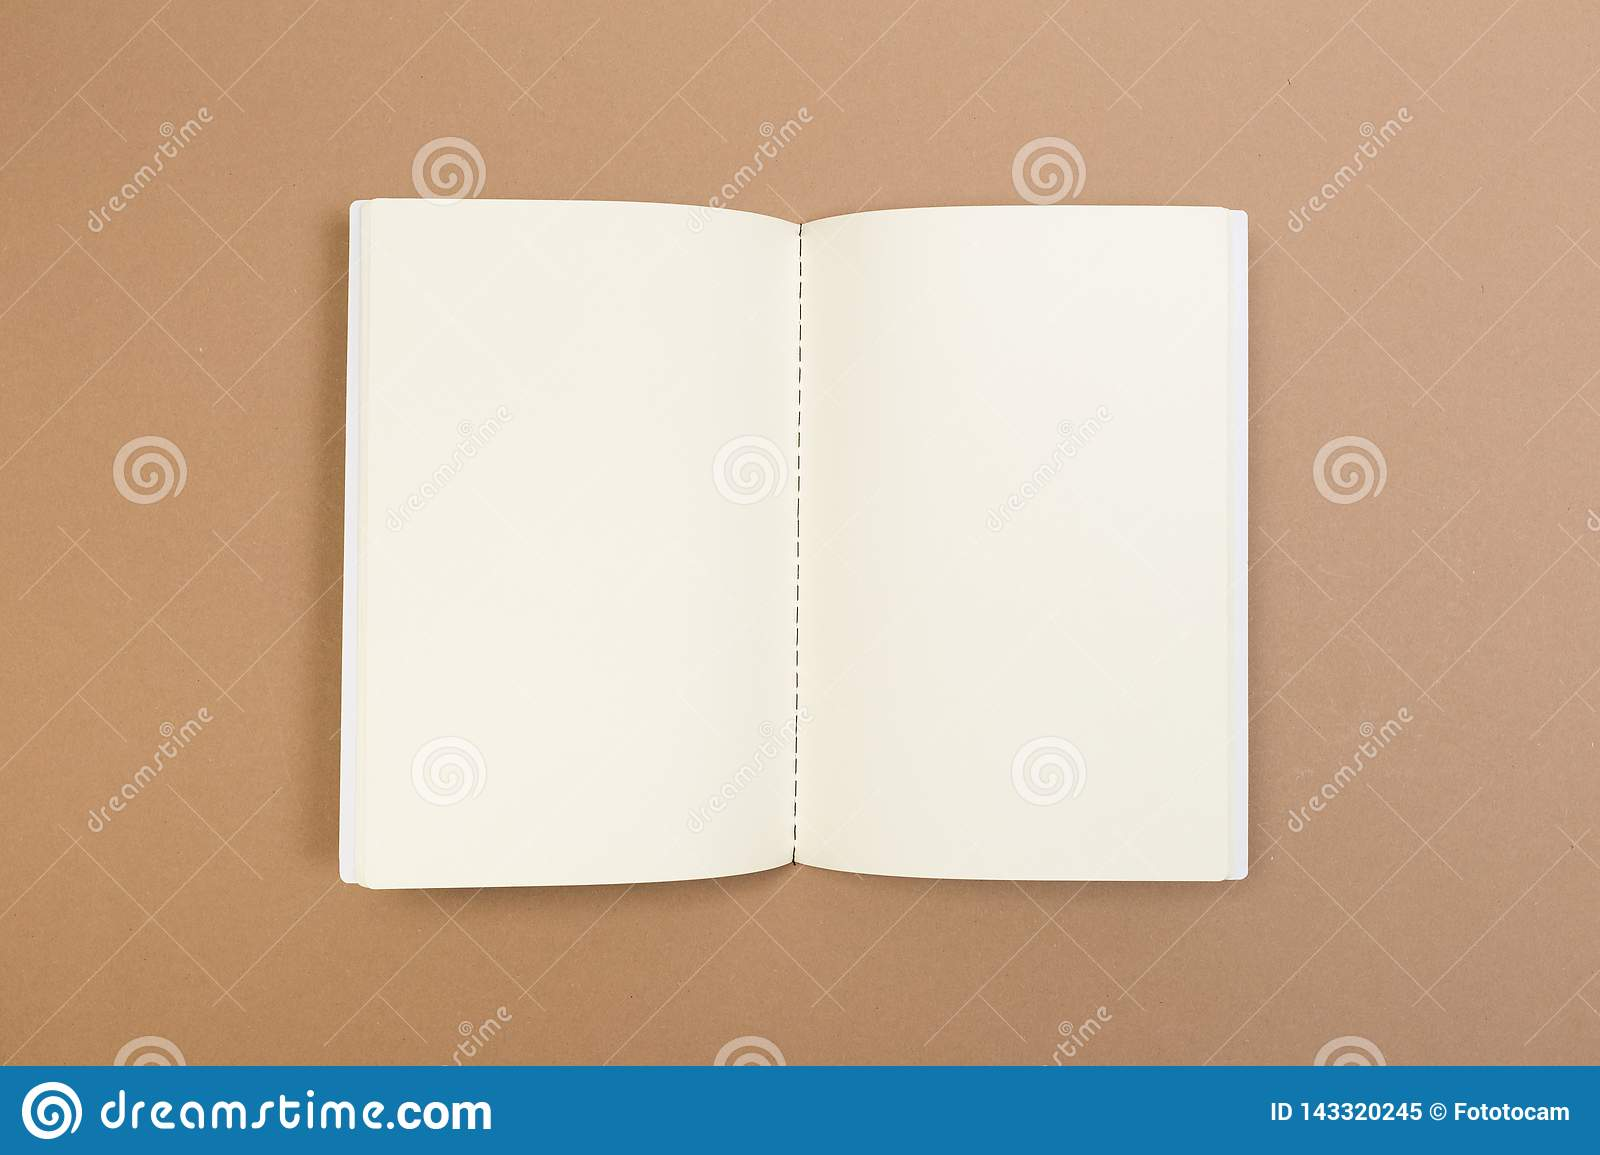 Blank Hard Cover Of Magazine, Book, Booklet, Brochure . Mock Up Template Ready For Your Design